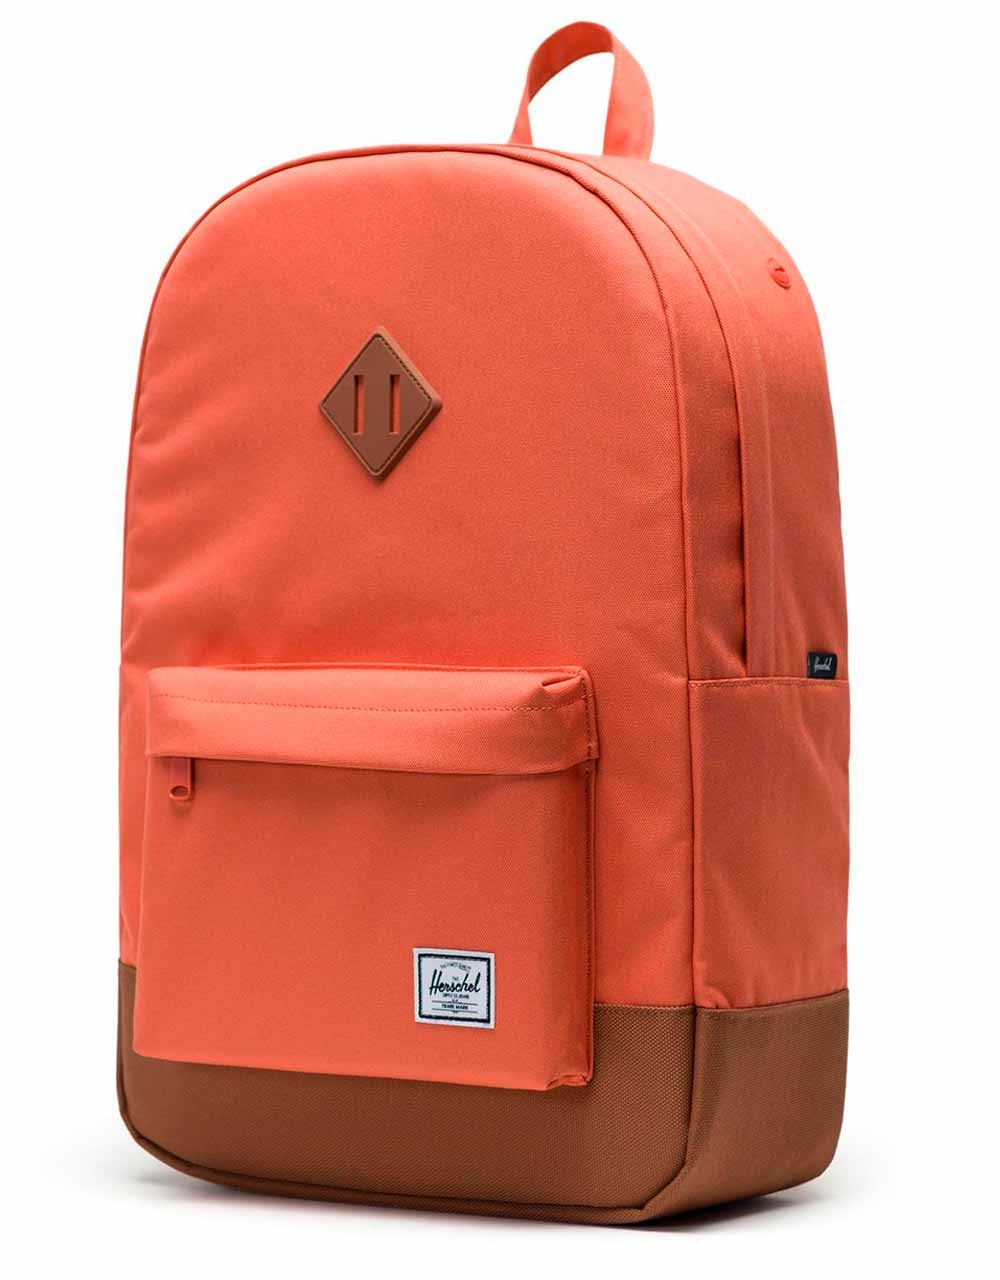 Рюкзак Herschel Heritage Apricot Brandy/Saddle Brown,